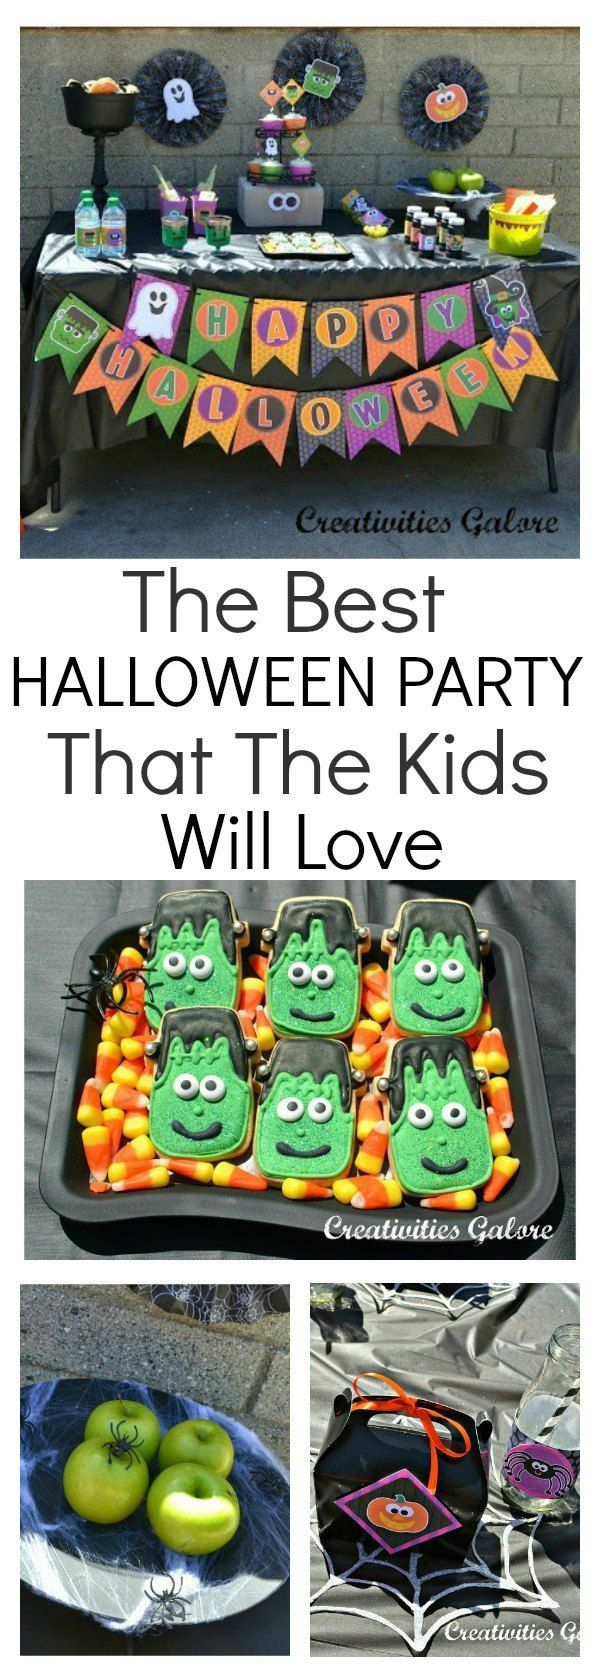 The Best Halloween Party That The Kids Are Going To Love Looking for some Halloween party ideas for the kids? This party has it all. Awesome Halloween decorations, food, and it's as creepy as they come. This is a party that the kids will love with some craft ideas to keep them entertained.